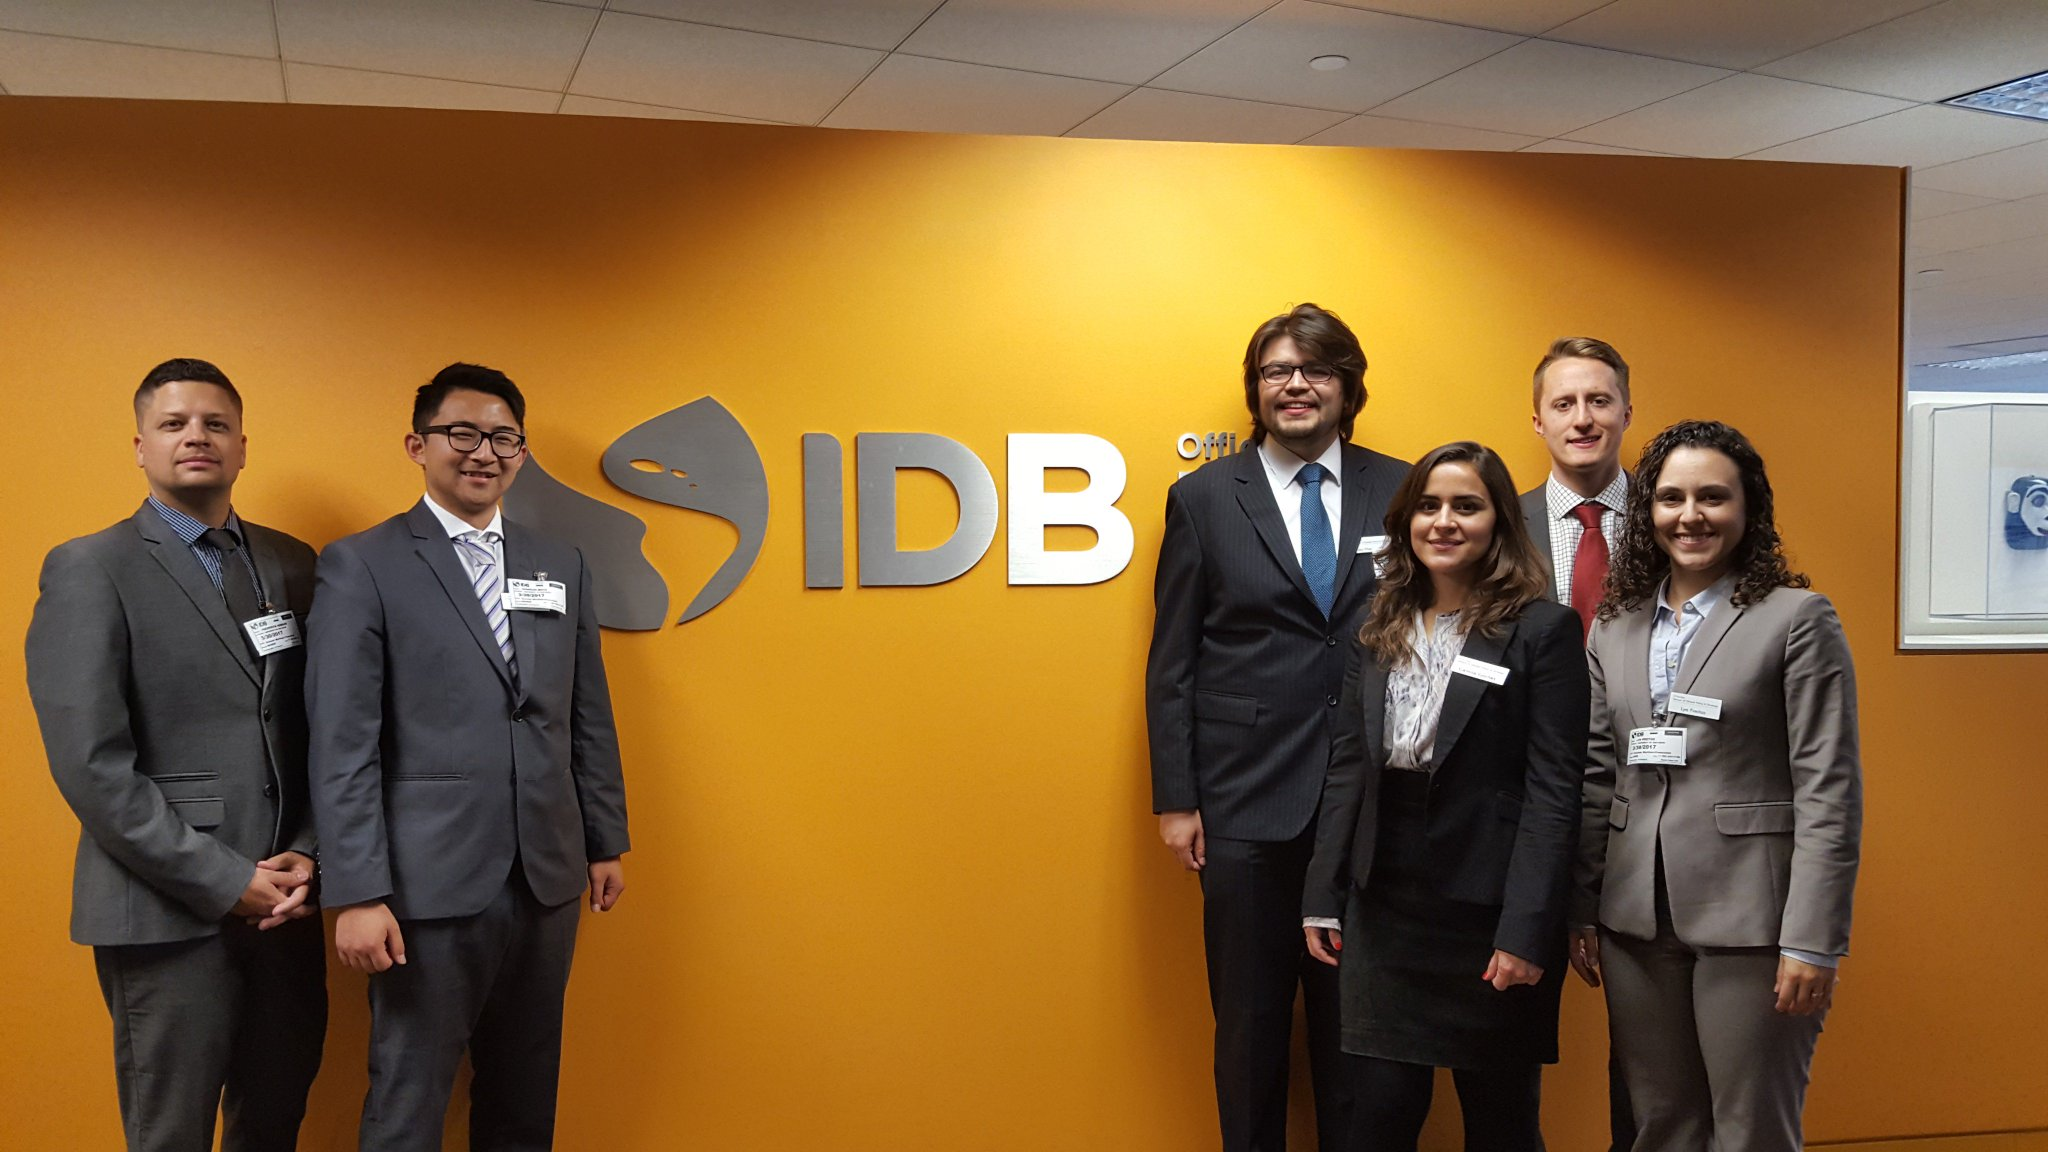 Students also wandered over to Inter-American Development Bank today in #WashingtonDC. Thanks for having us, @the_IDB! https://t.co/1z2zeJDDOl